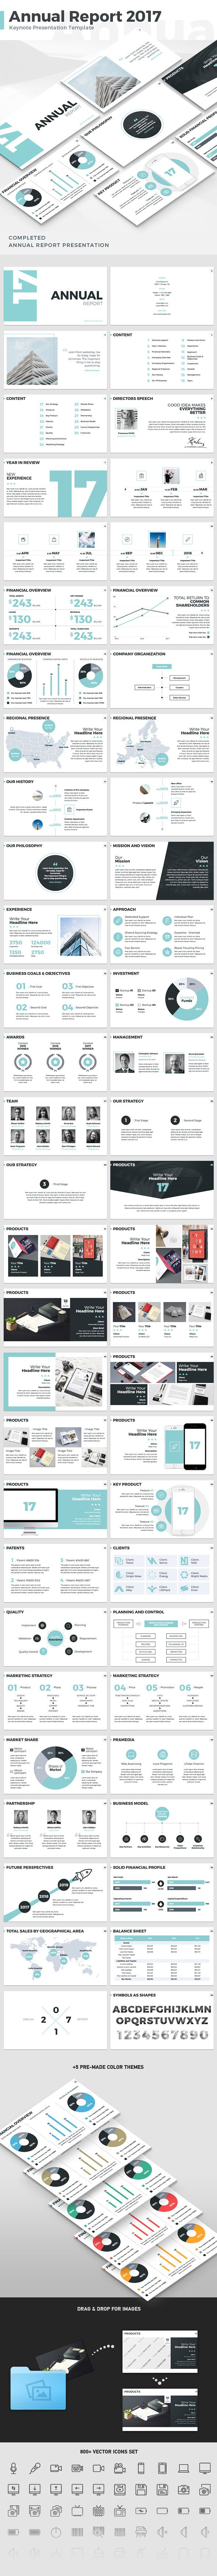 Annual Report   Keynote Template  Annual Reports Keynote